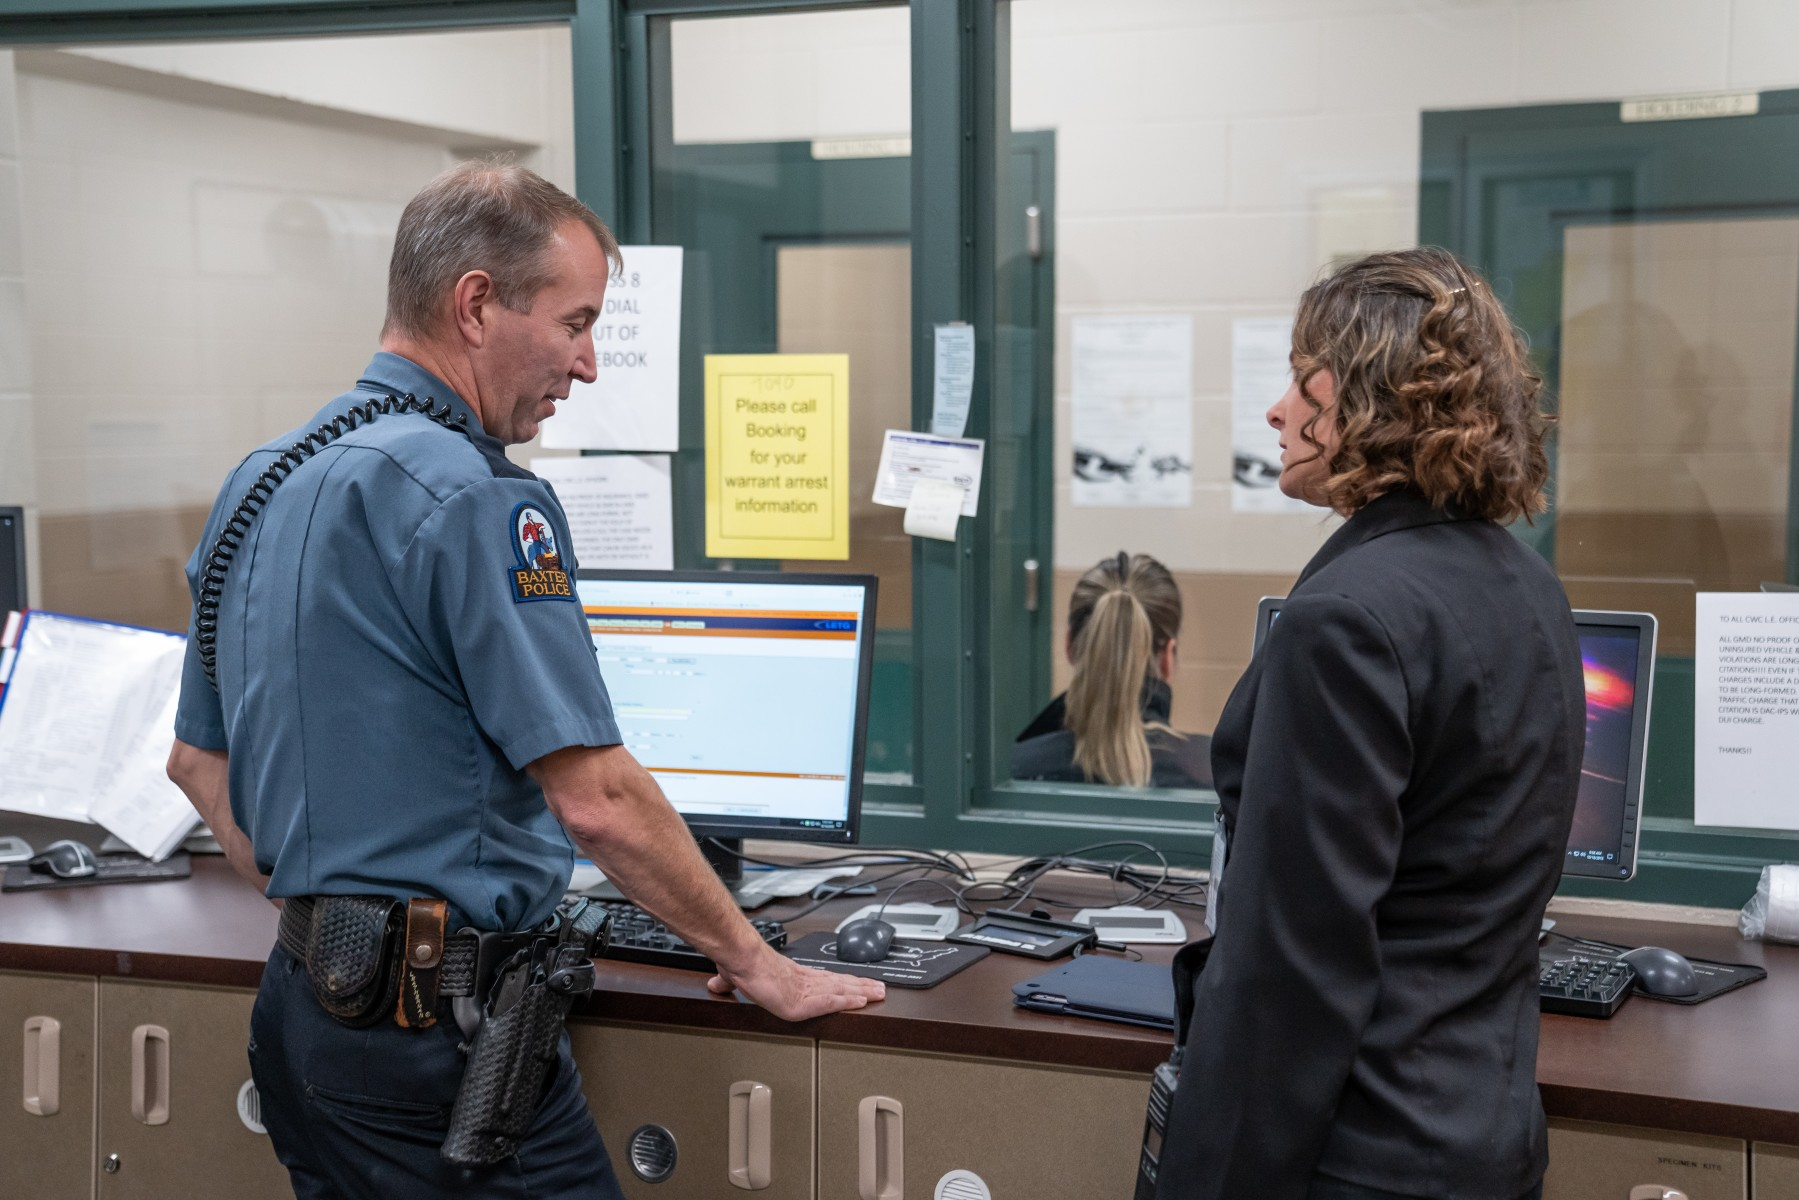 Baxter Police Chief Jim Exsted visits with Theresa Rardin at the Crow Wing County Jail booking room. Exsted said this regional collaboration provides another tool for law enforcement, including jail staff, when dealing with individuals suffering from mental illness.